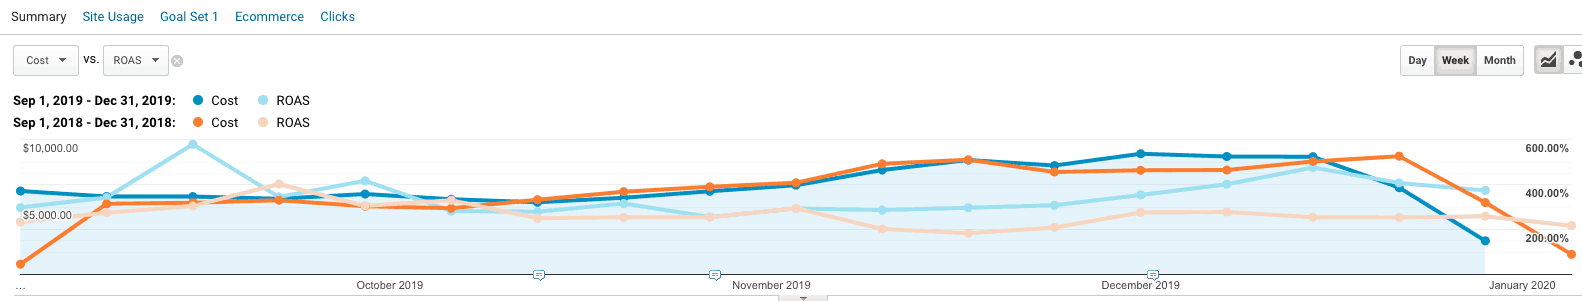 Google Analytics: Sep - Dec 2019 vs Sep - Dec 2018